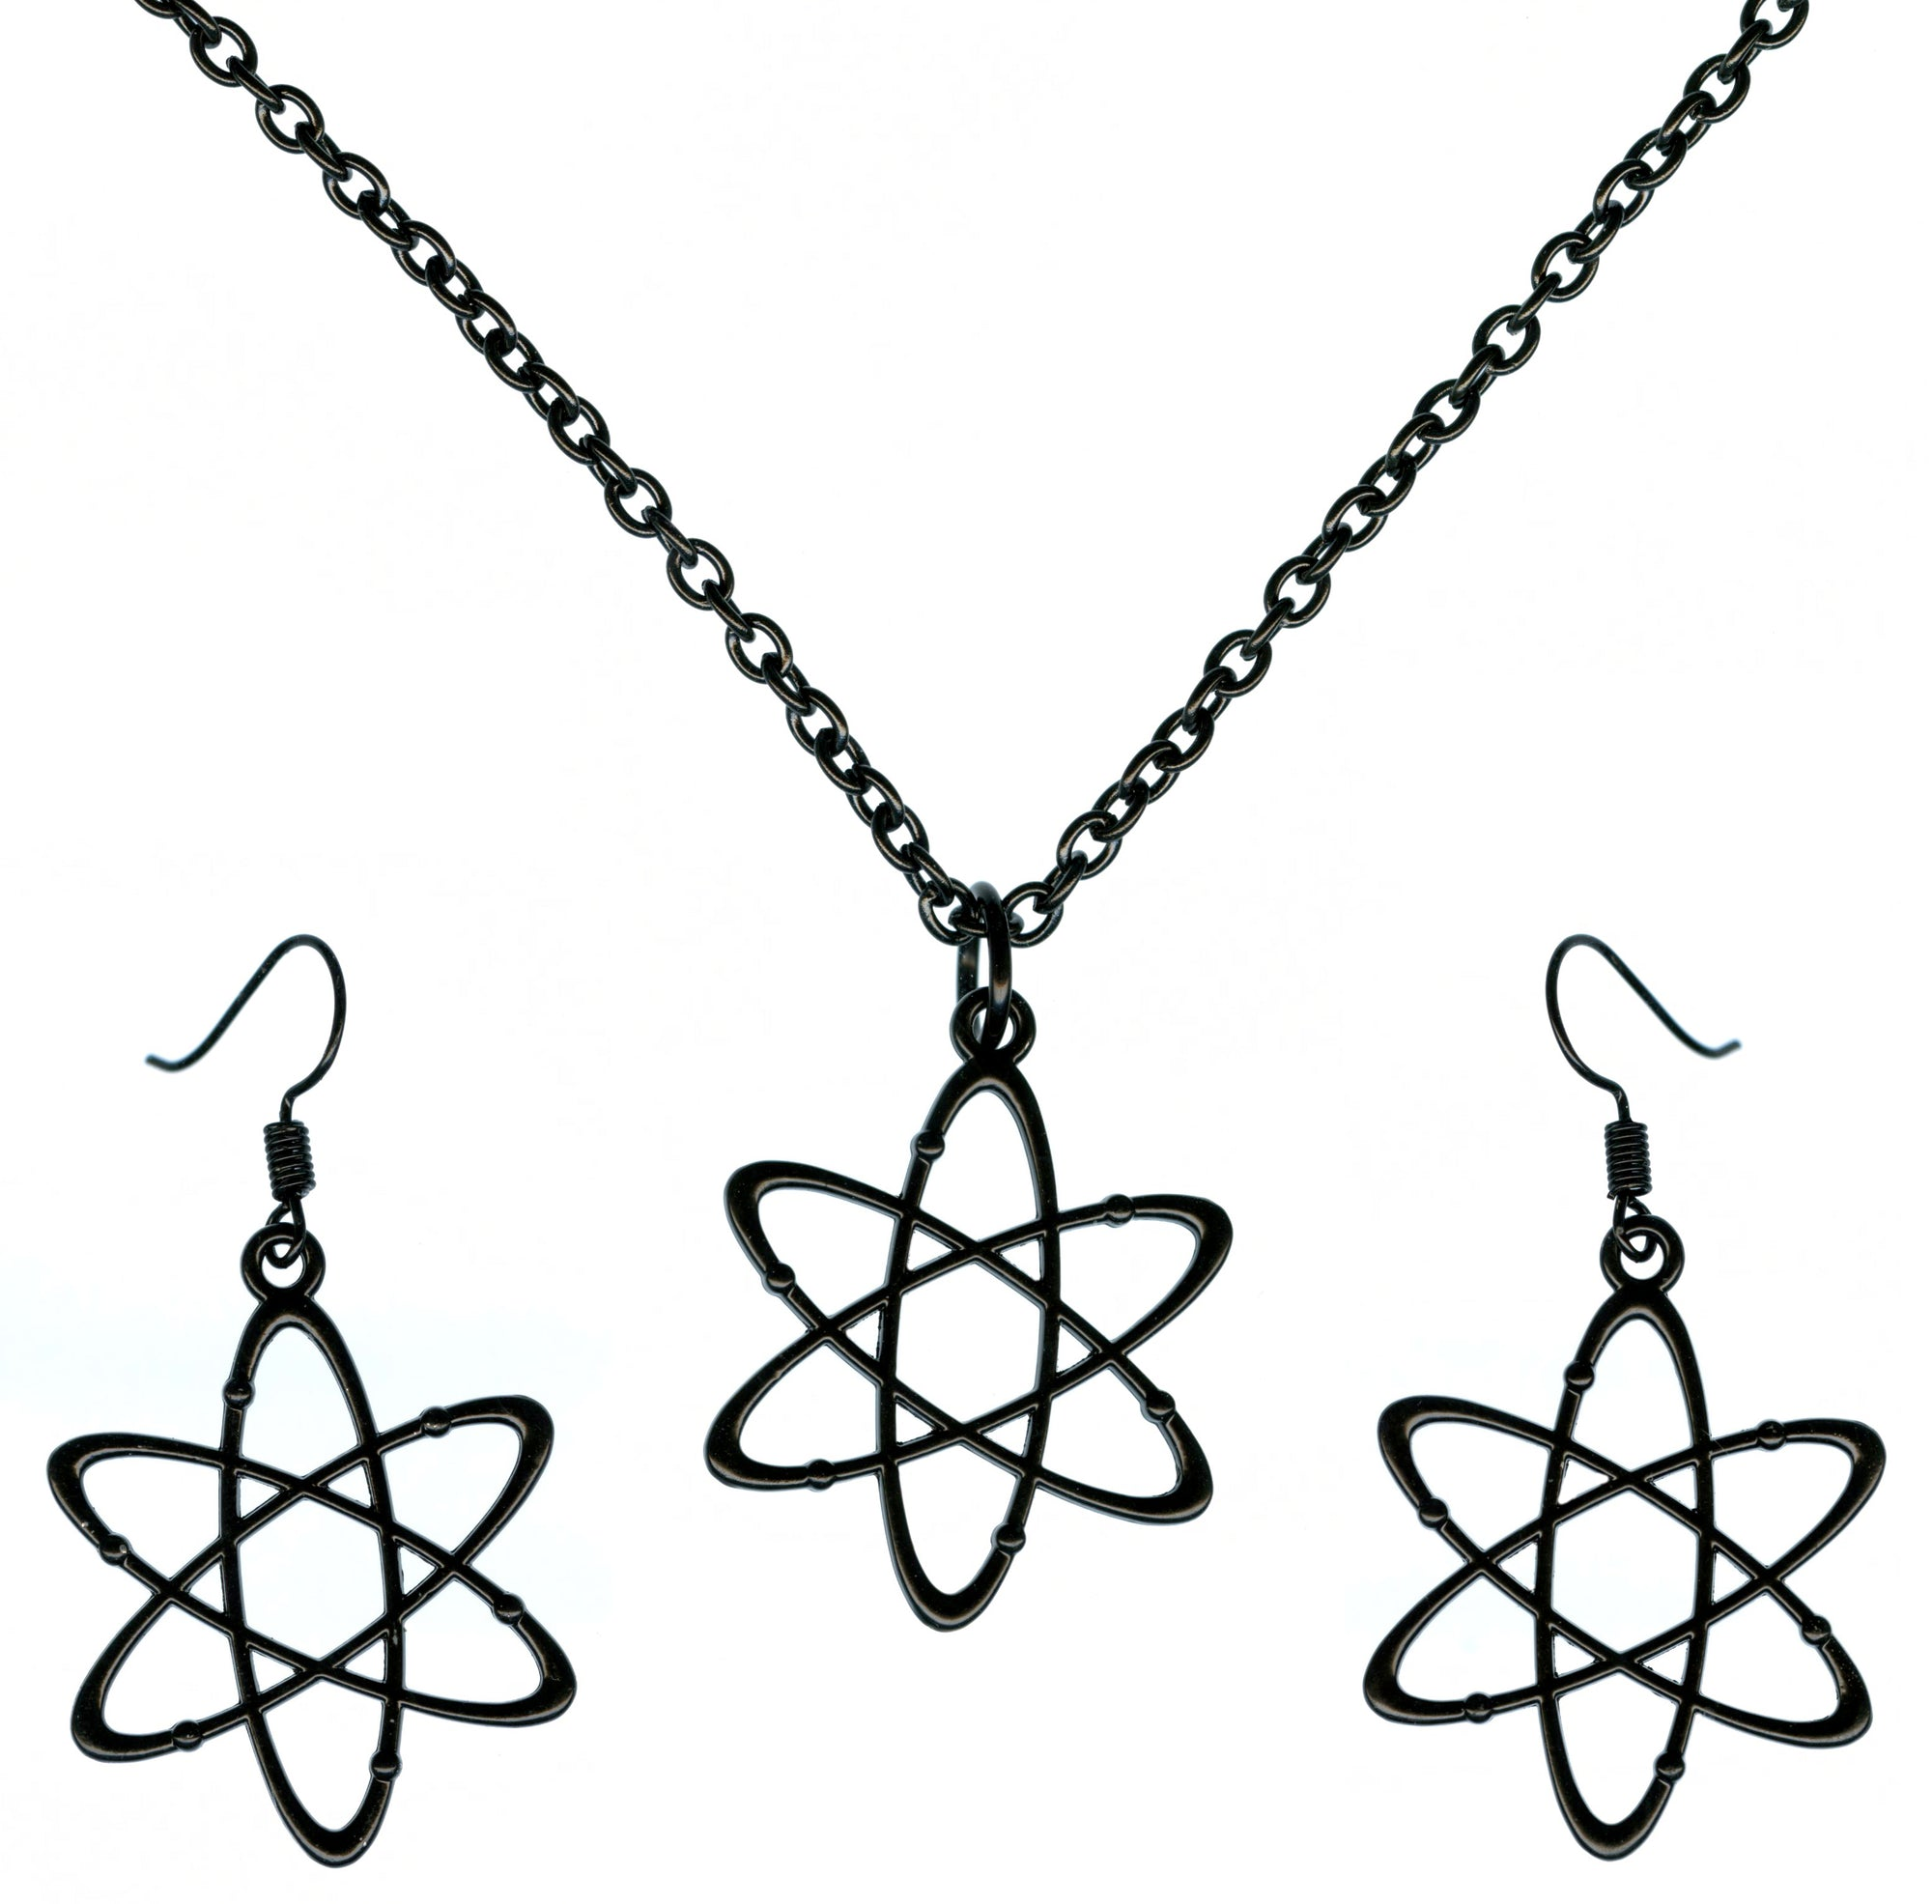 Science Atom Big Charms Chain Necklace and Earrings Set in Black